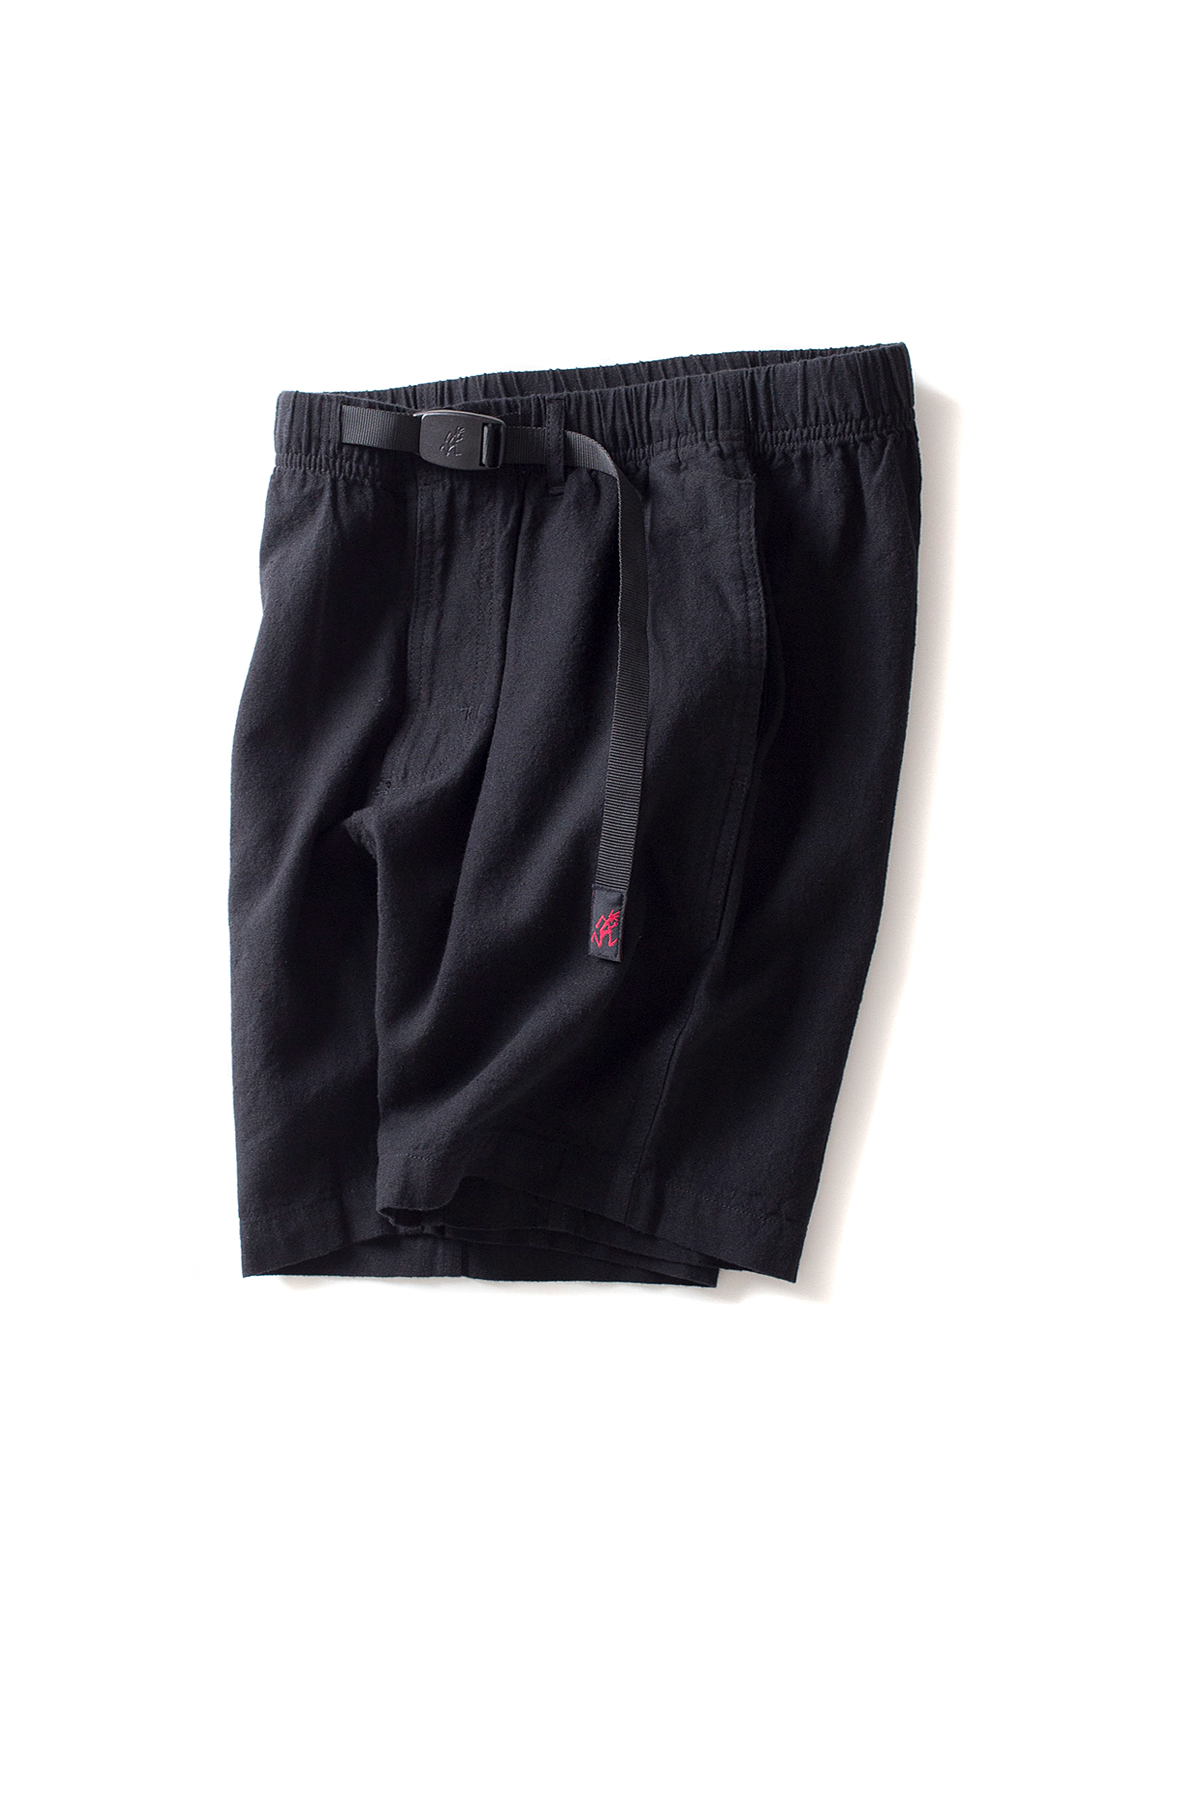 Gramicci : Cotton-Linen Zipper Shorts (Black)